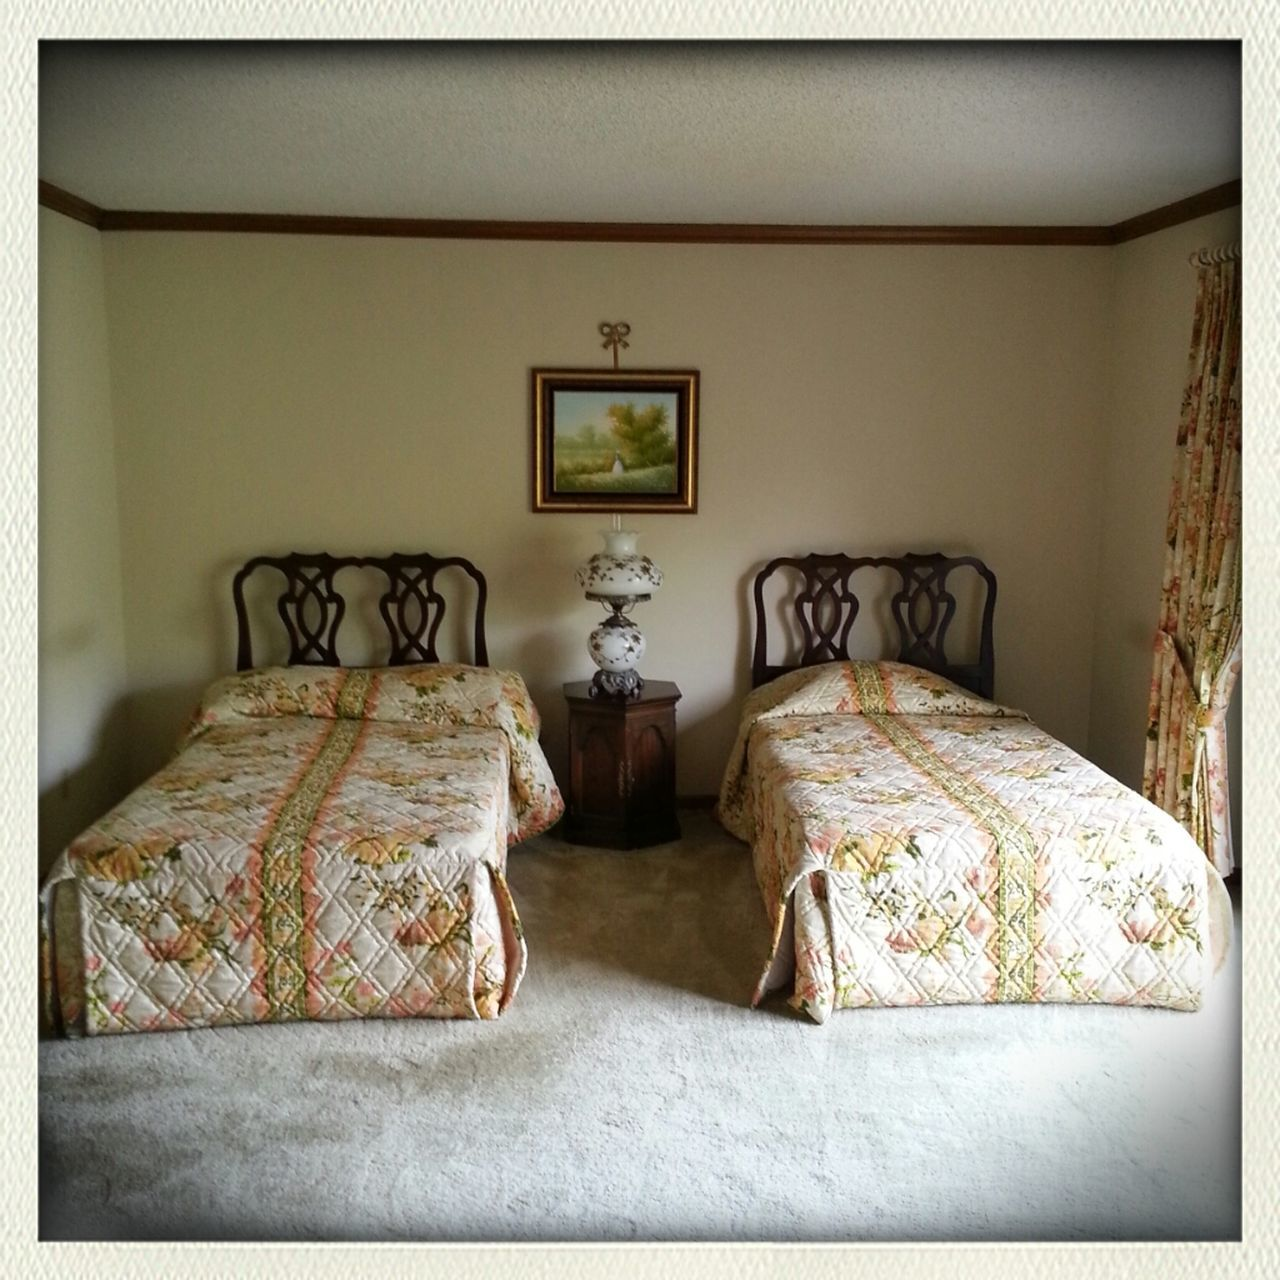 bed, bedroom, pillow, home interior, home showcase interior, indoors, absence, no people, luxury, architecture, day